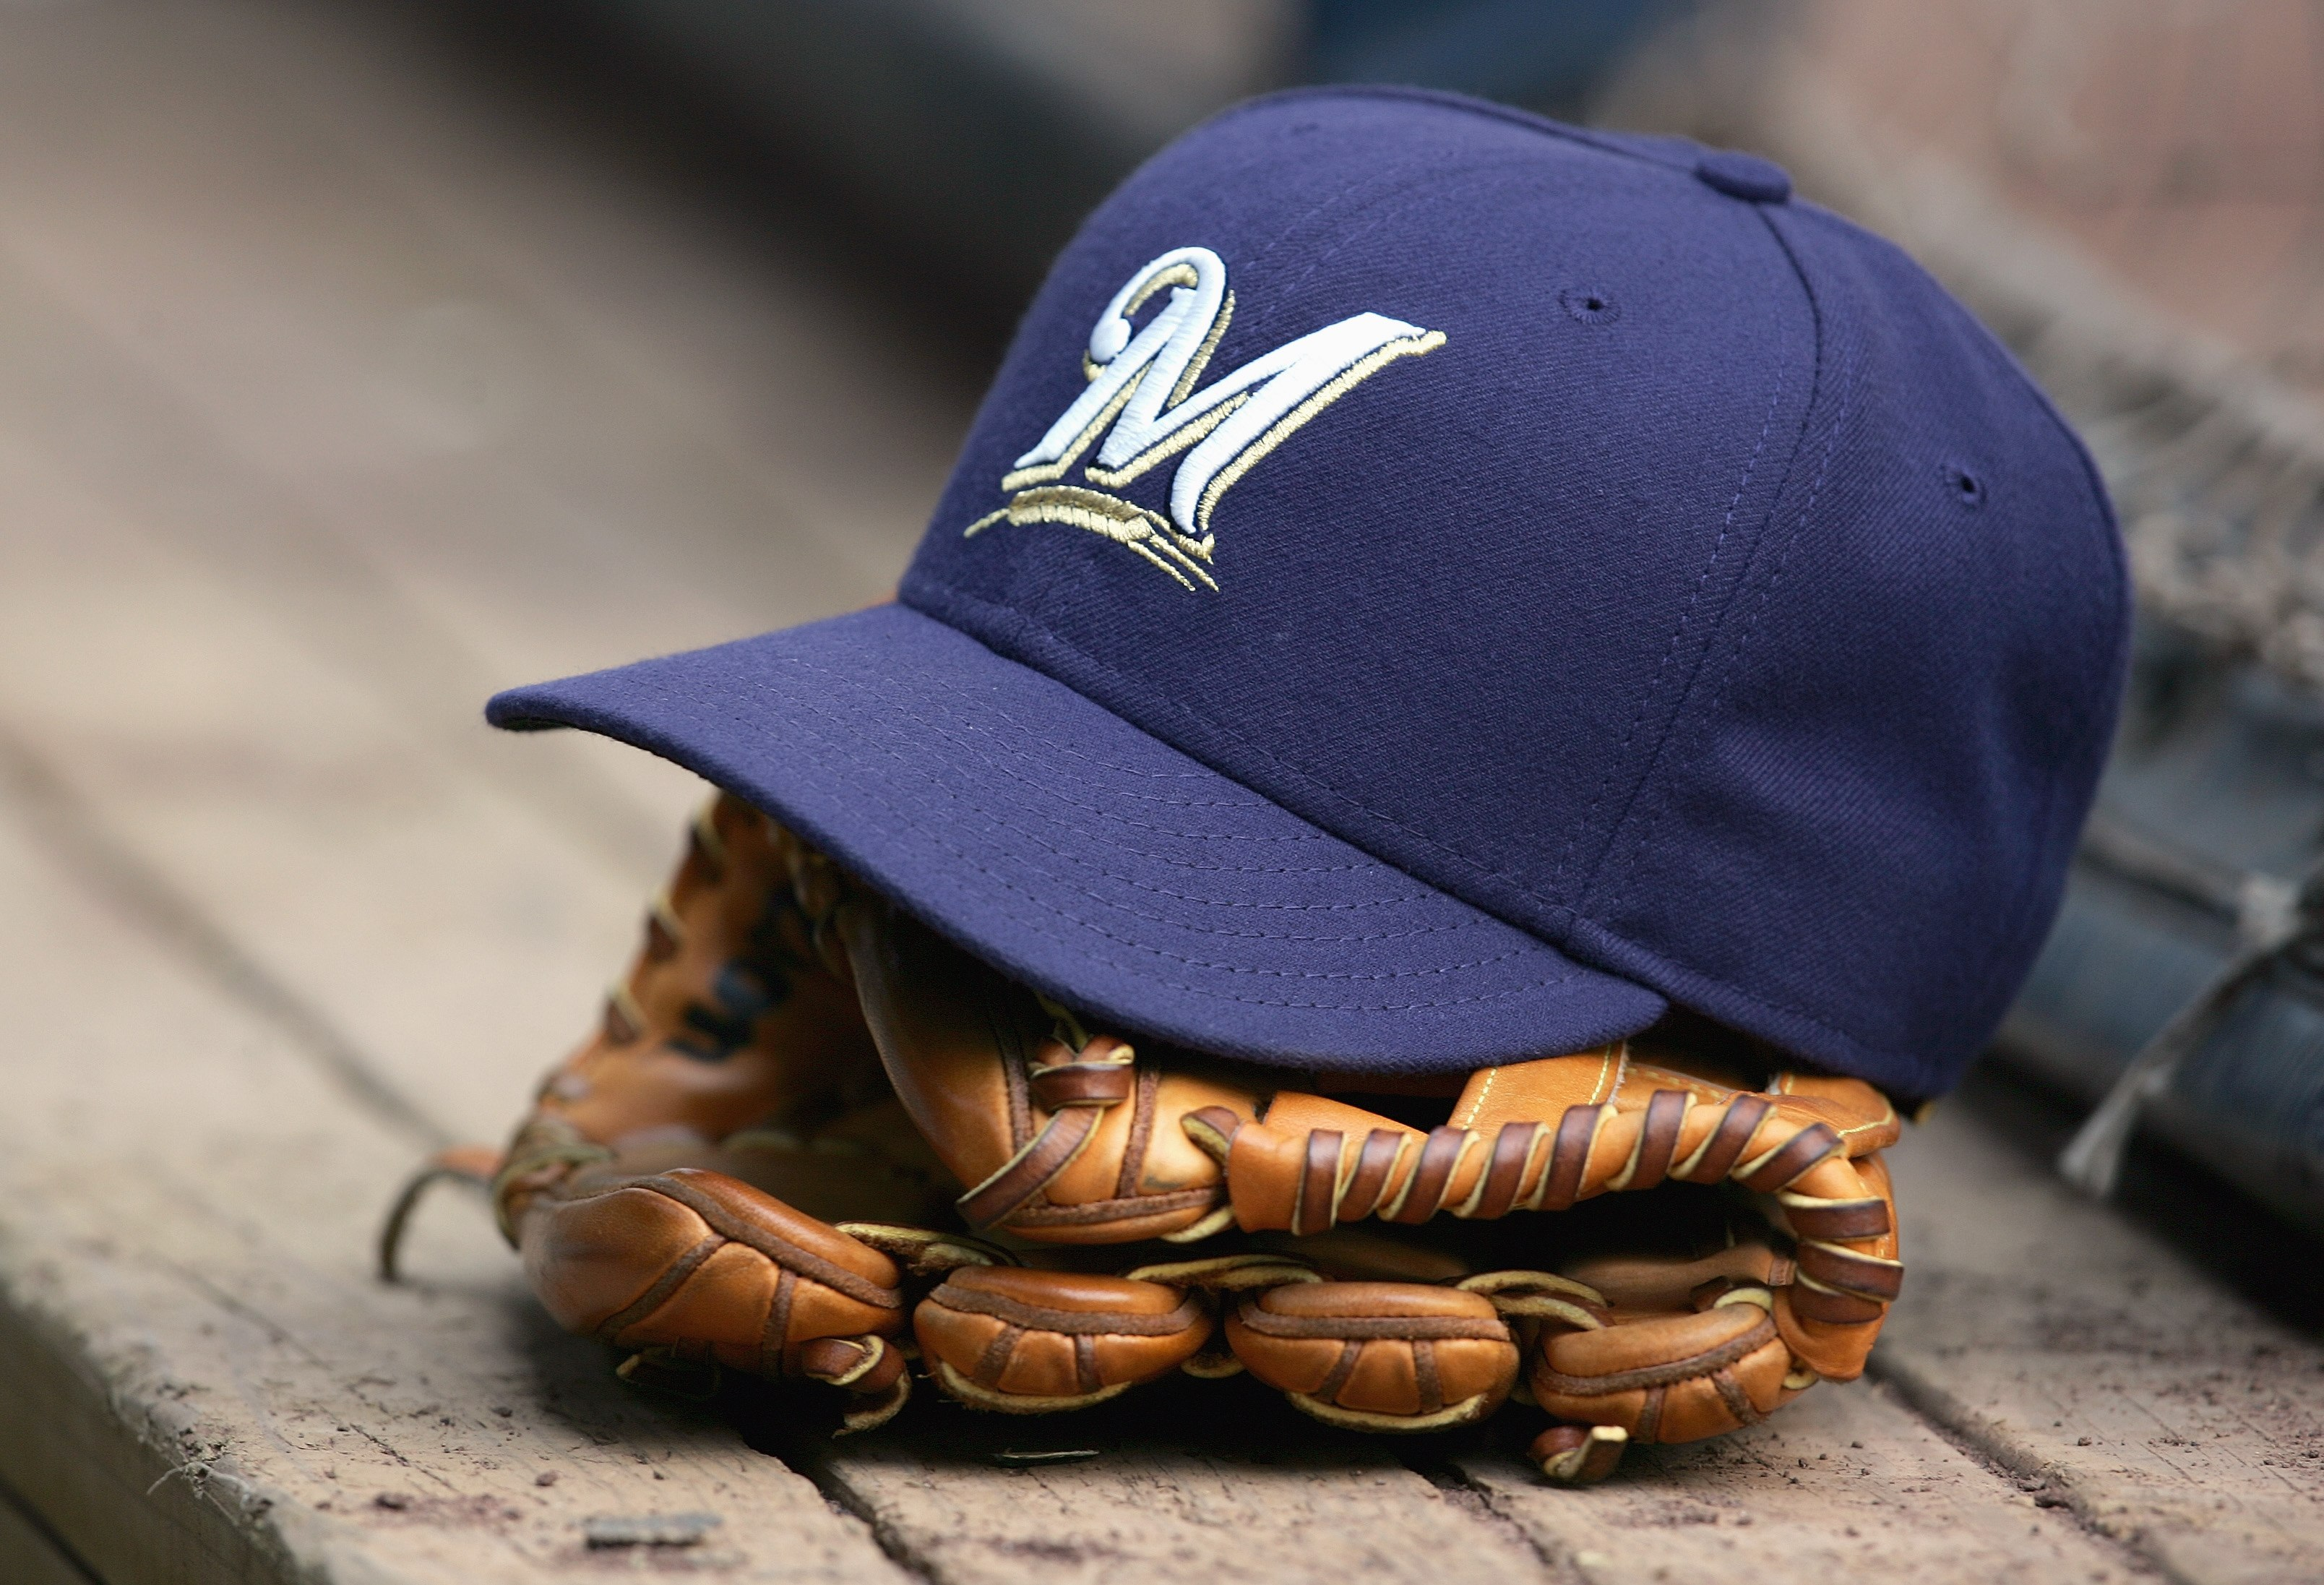 Tickets for Brewers-Marlins series go on sale Thursday